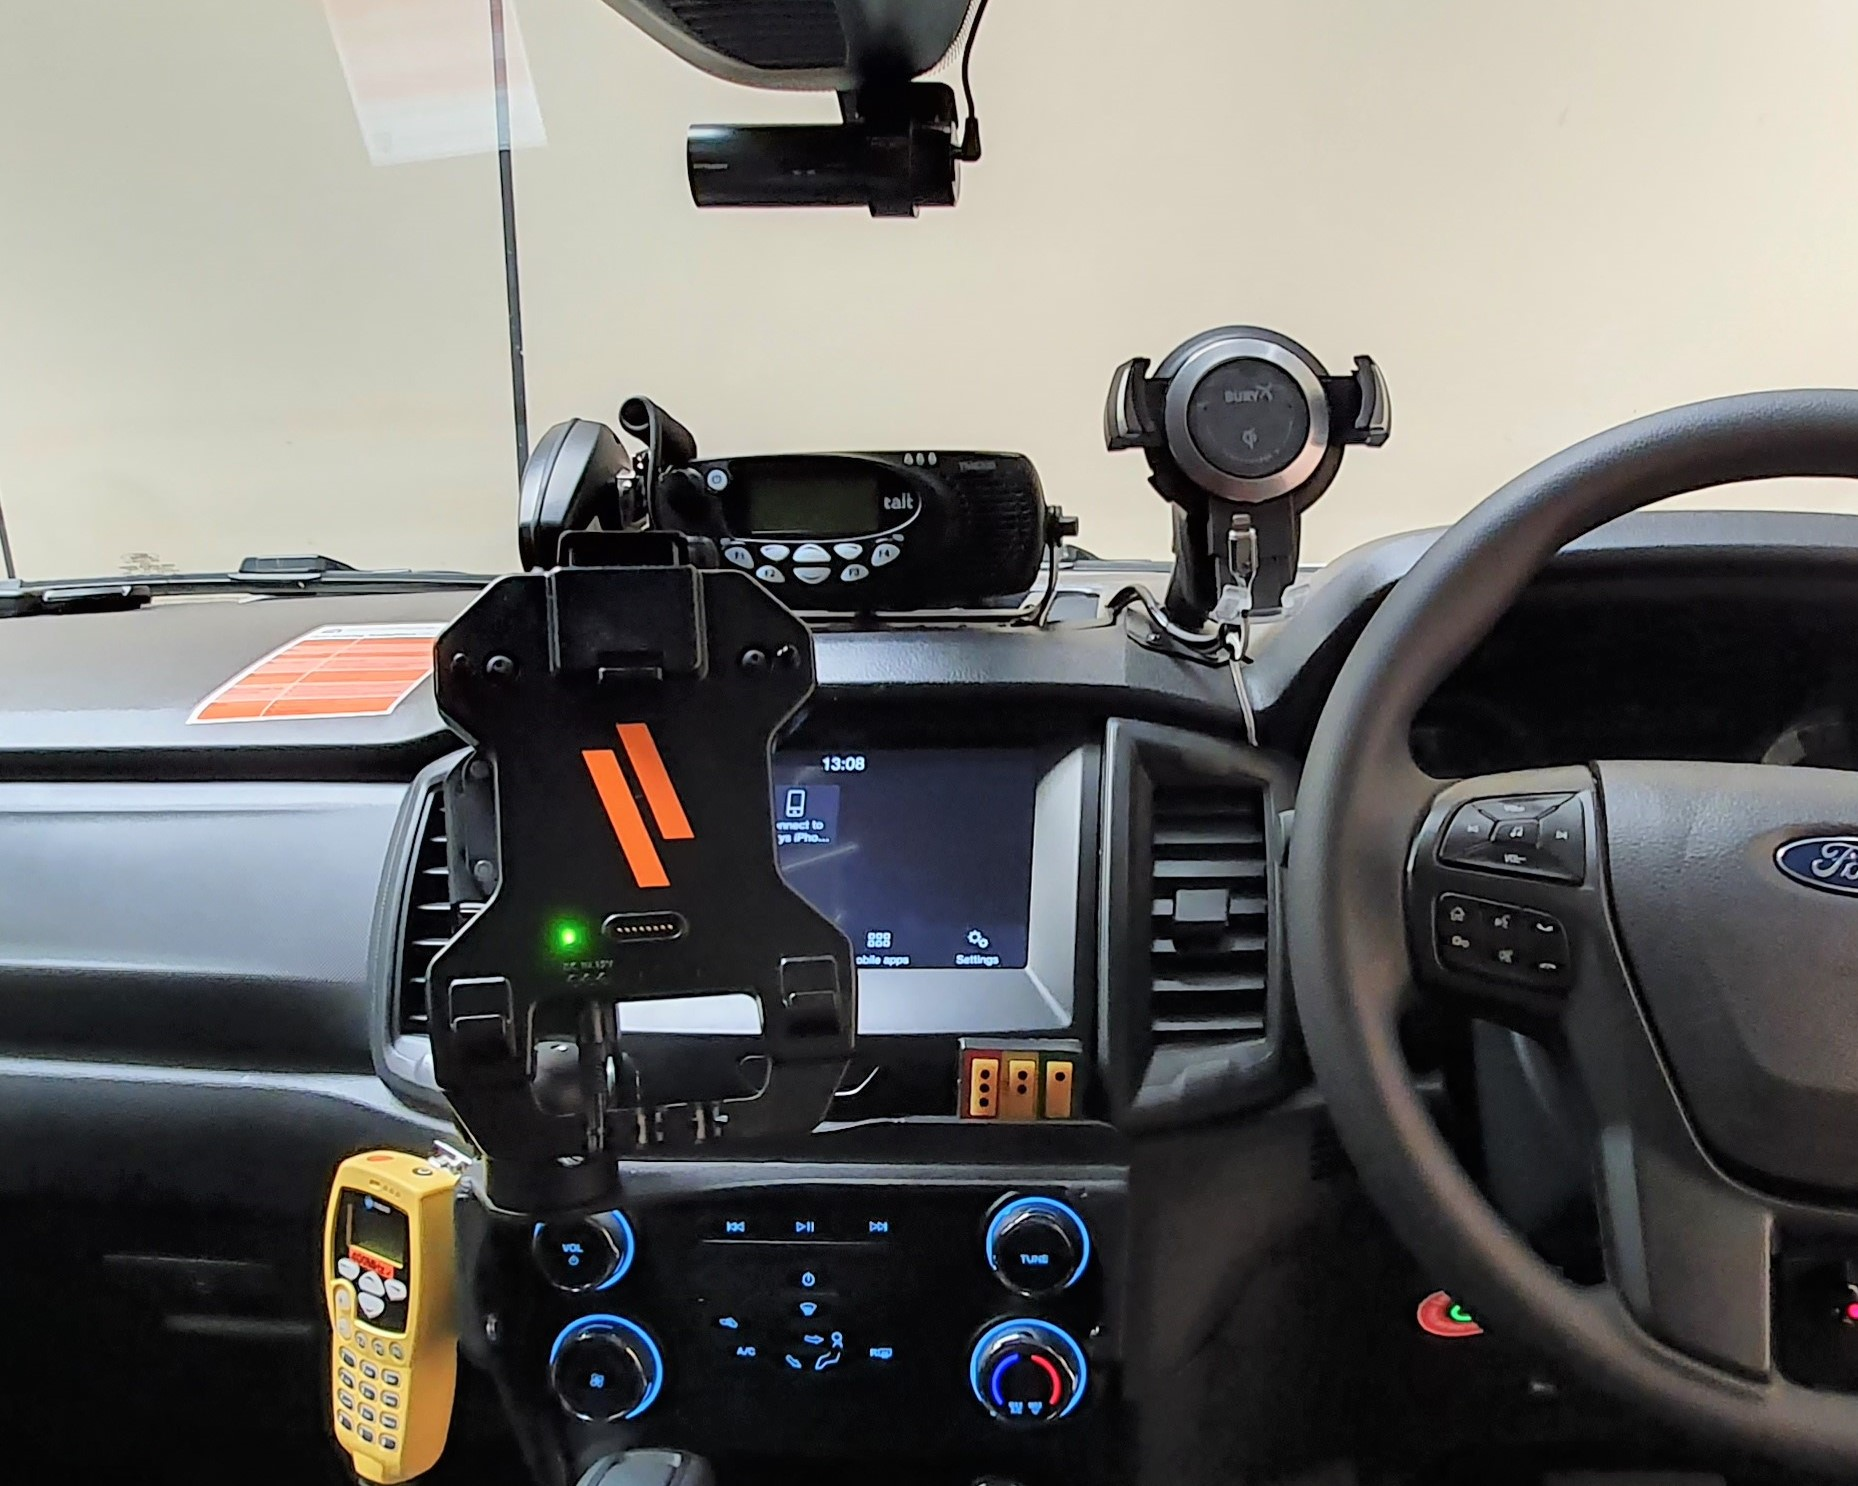 Havis Vehicle Dock installed into Ford Ranger with Dash Mounting Kit